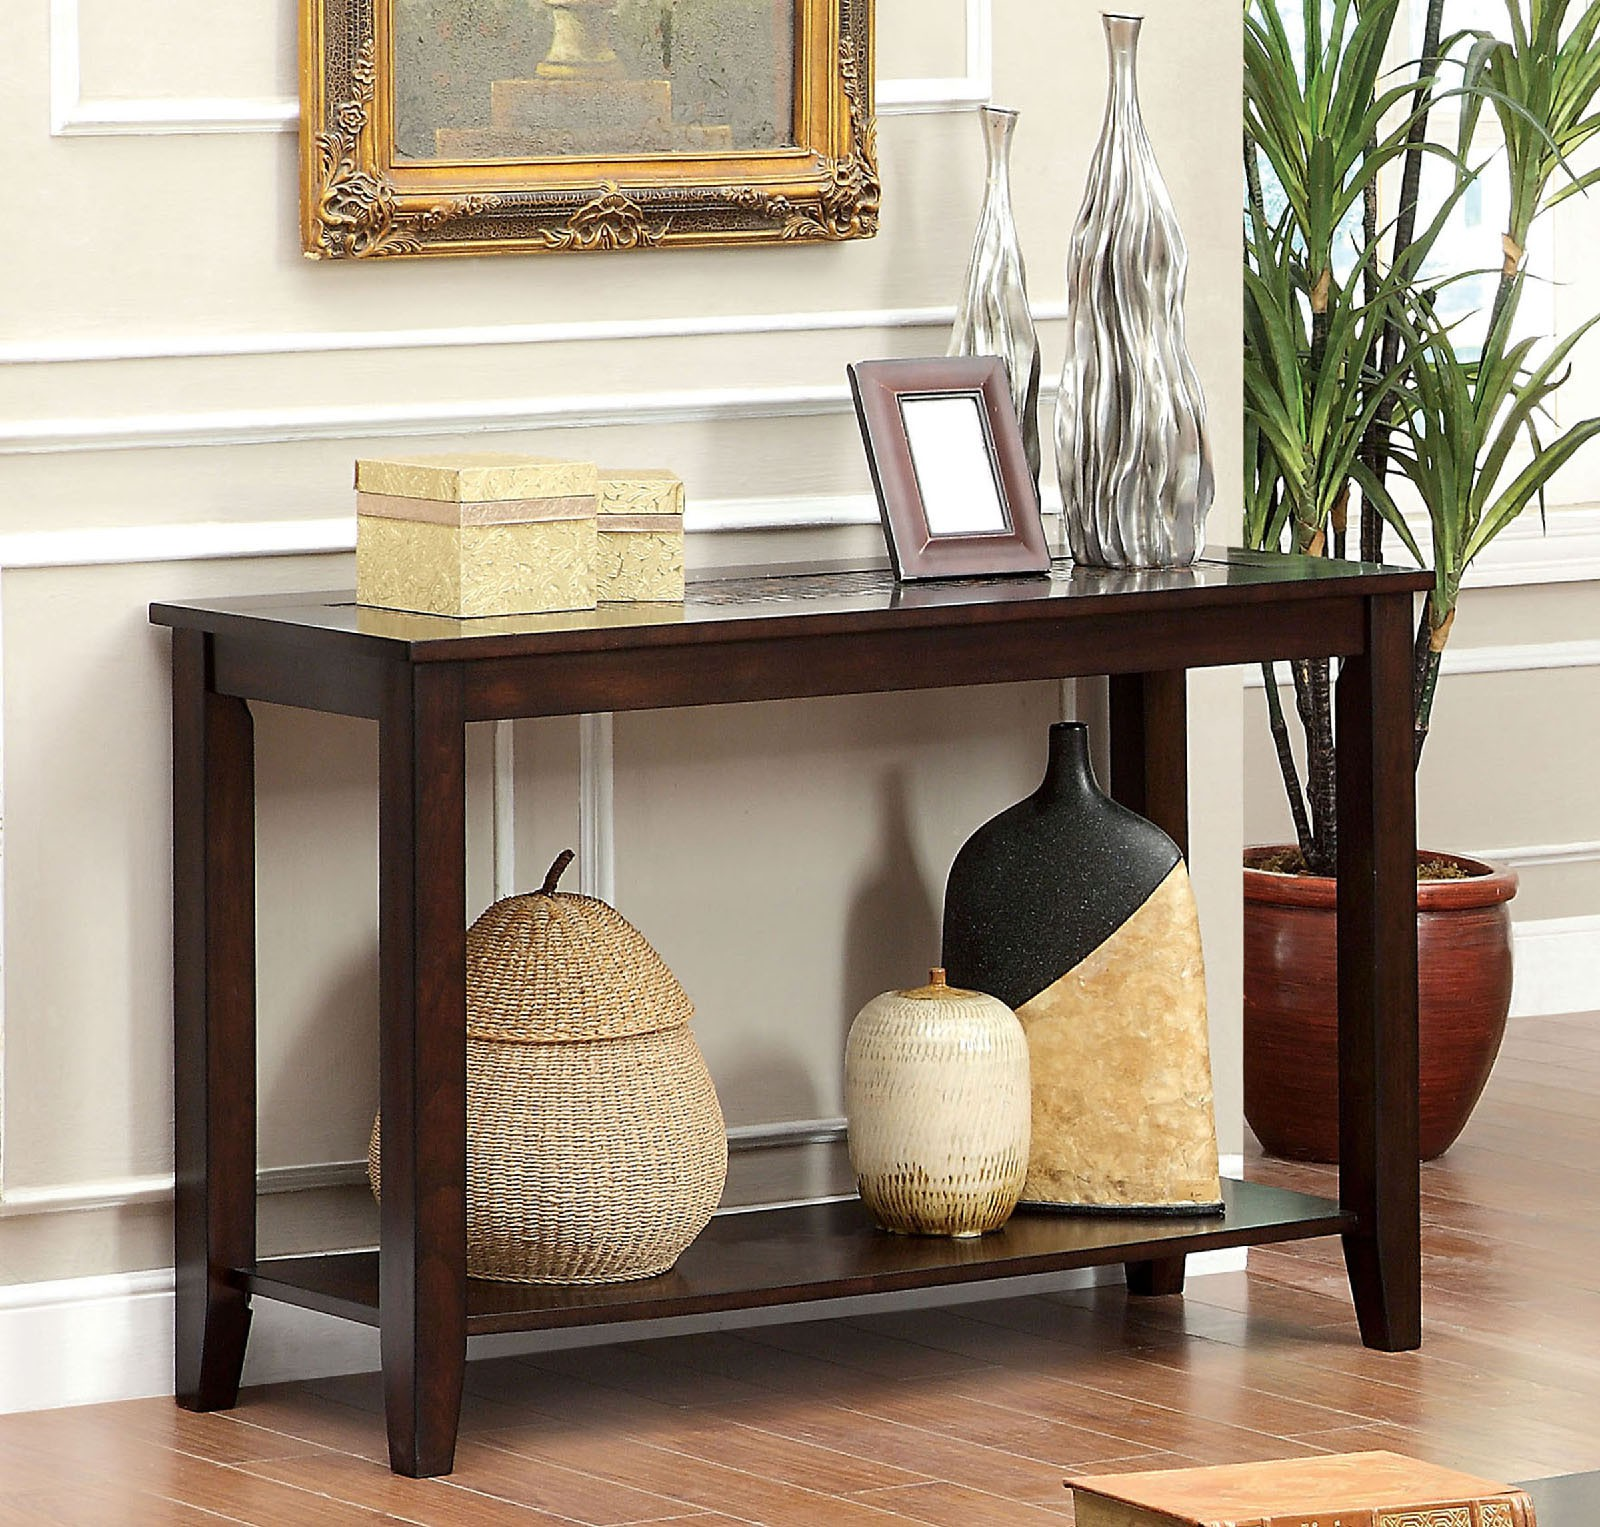 Simple Relax Twonsend Transitional Sofa Console Table Mosaic Top Open Shelf  Dark Wood Cherry